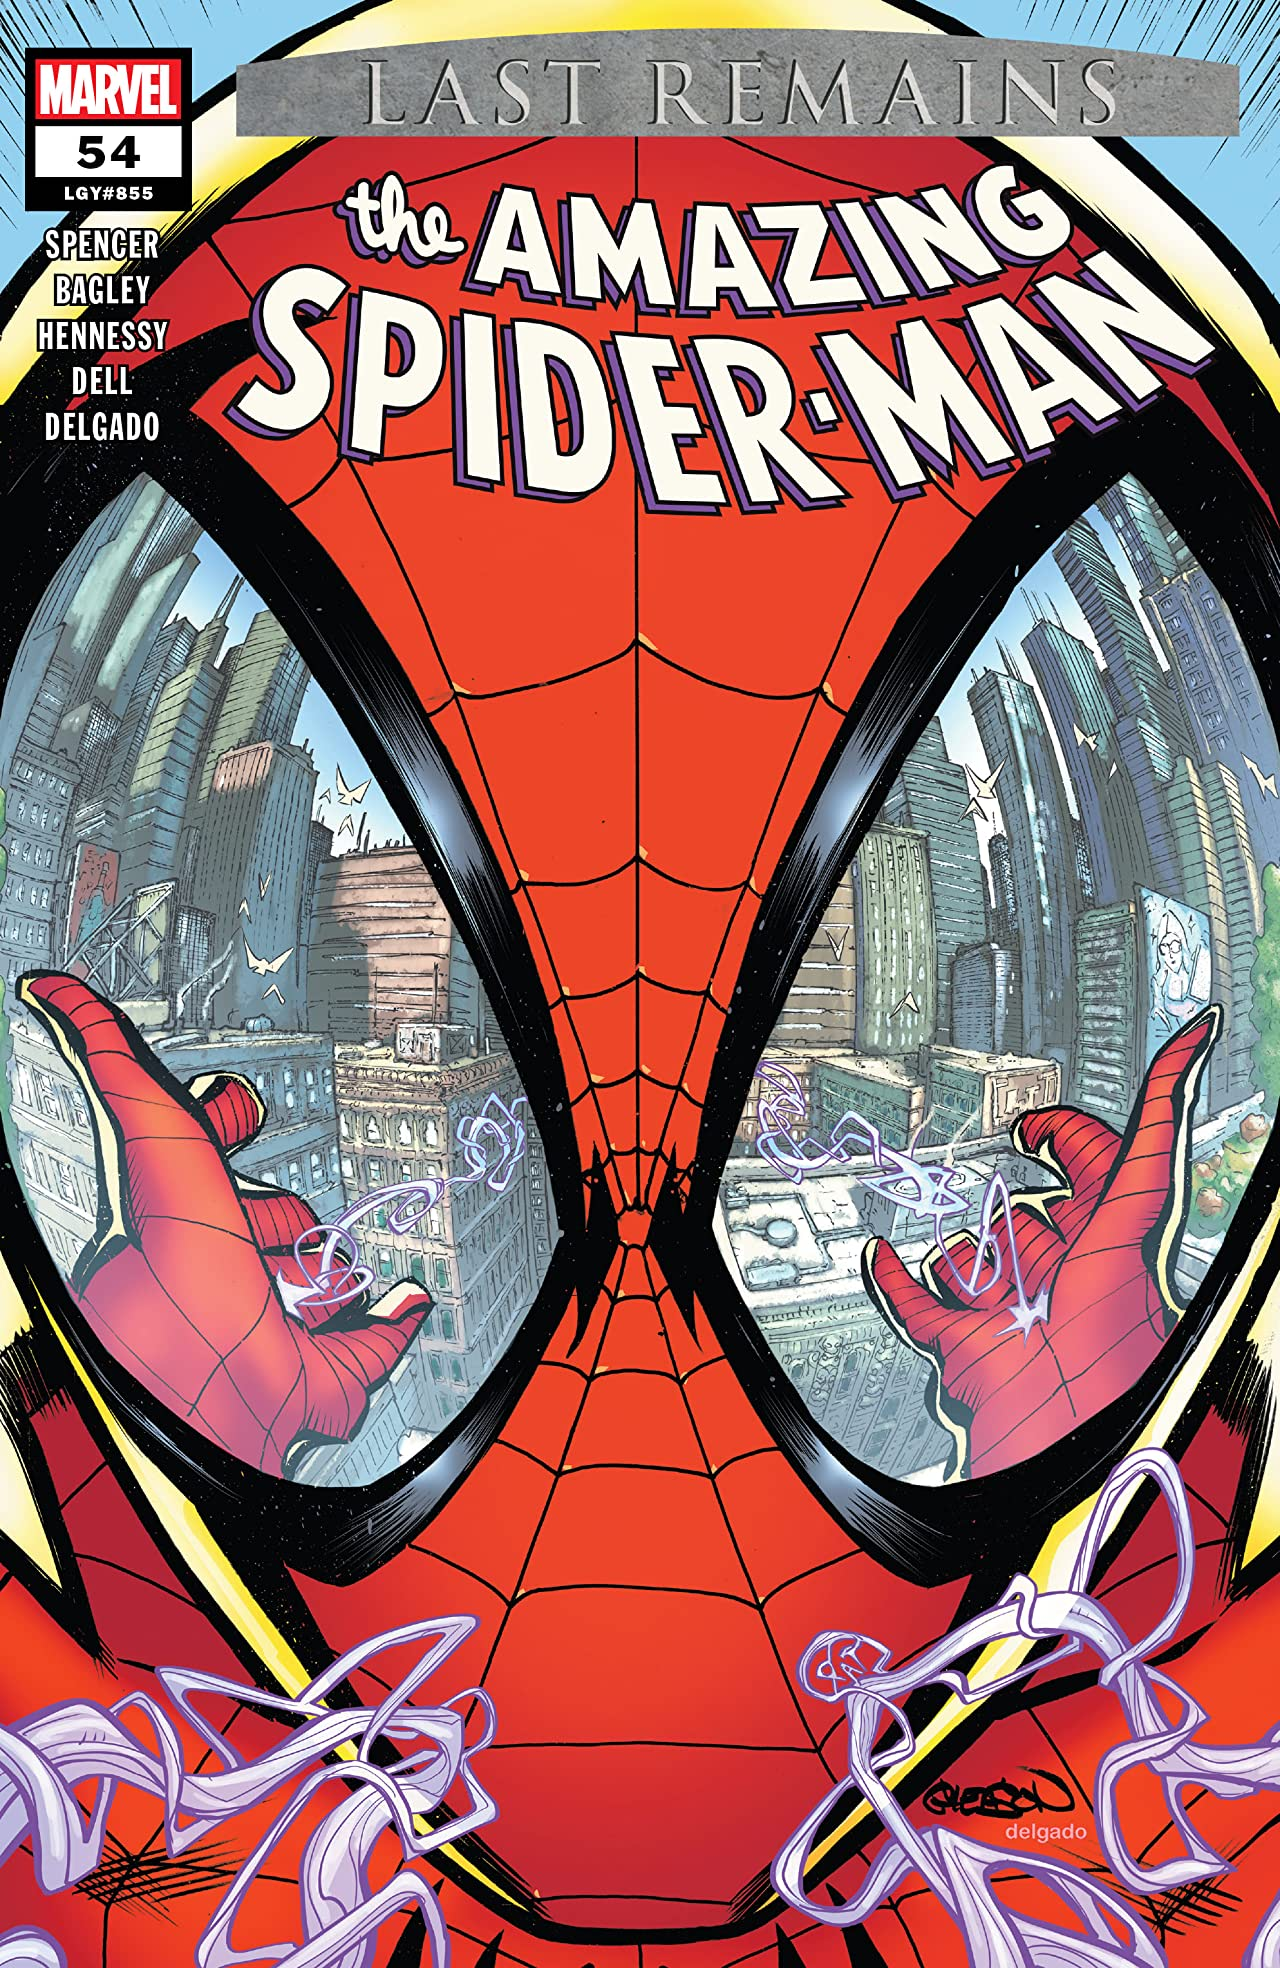 REVIEW: Amazing Spider-Man #54